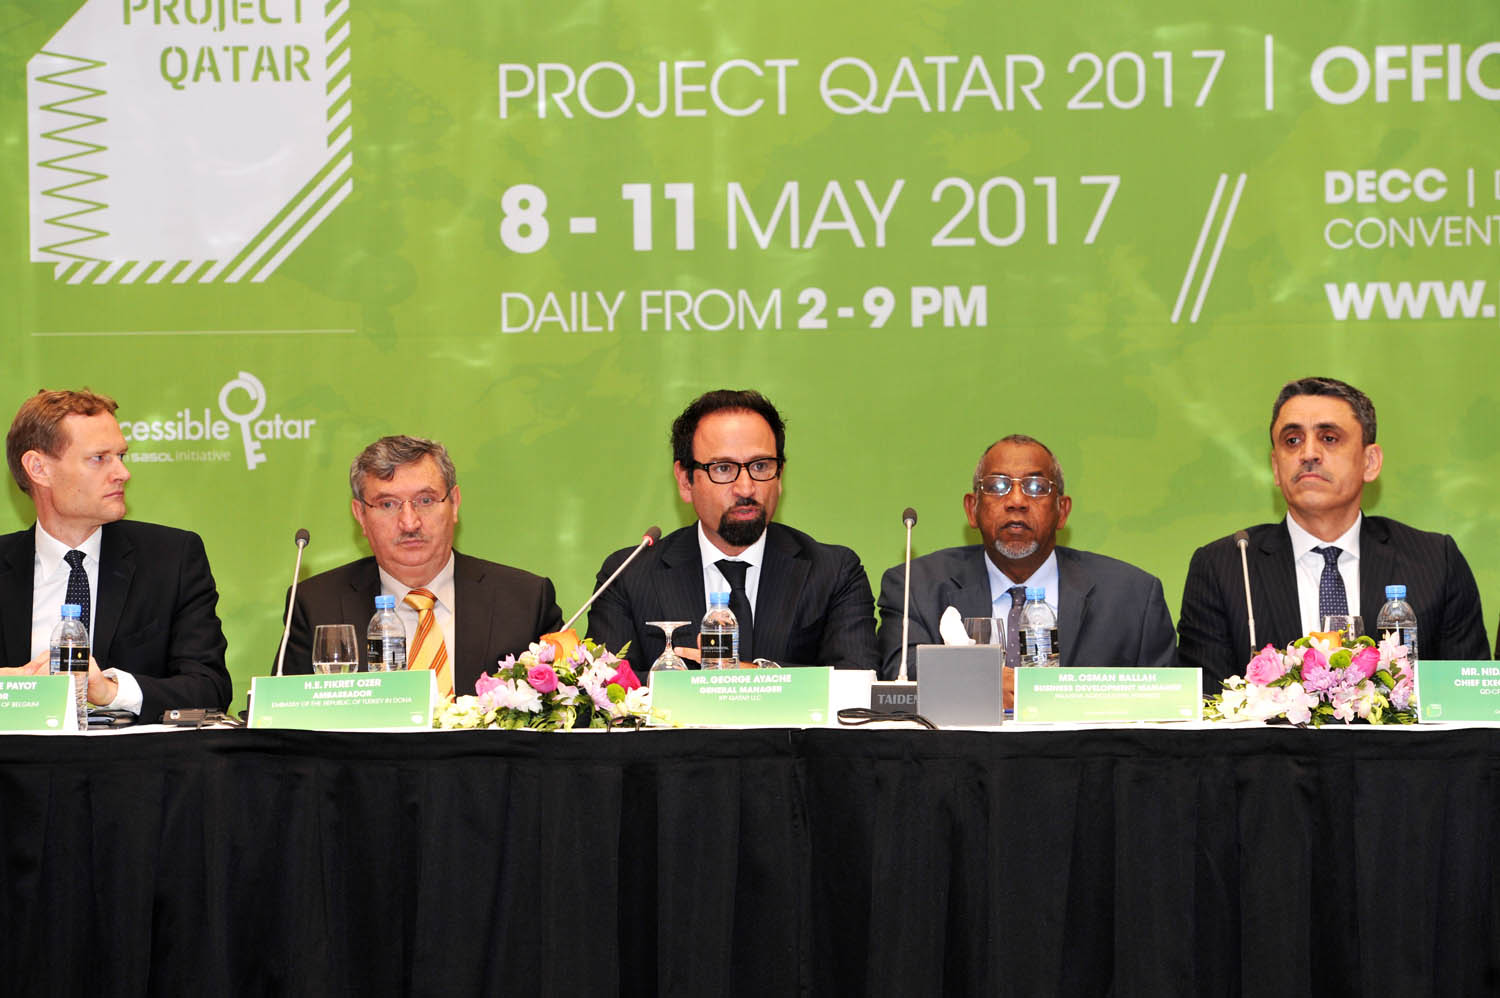 Project qatar 2017 is set to receive 516 exhibitors from for International builders show 2017 exhibitors